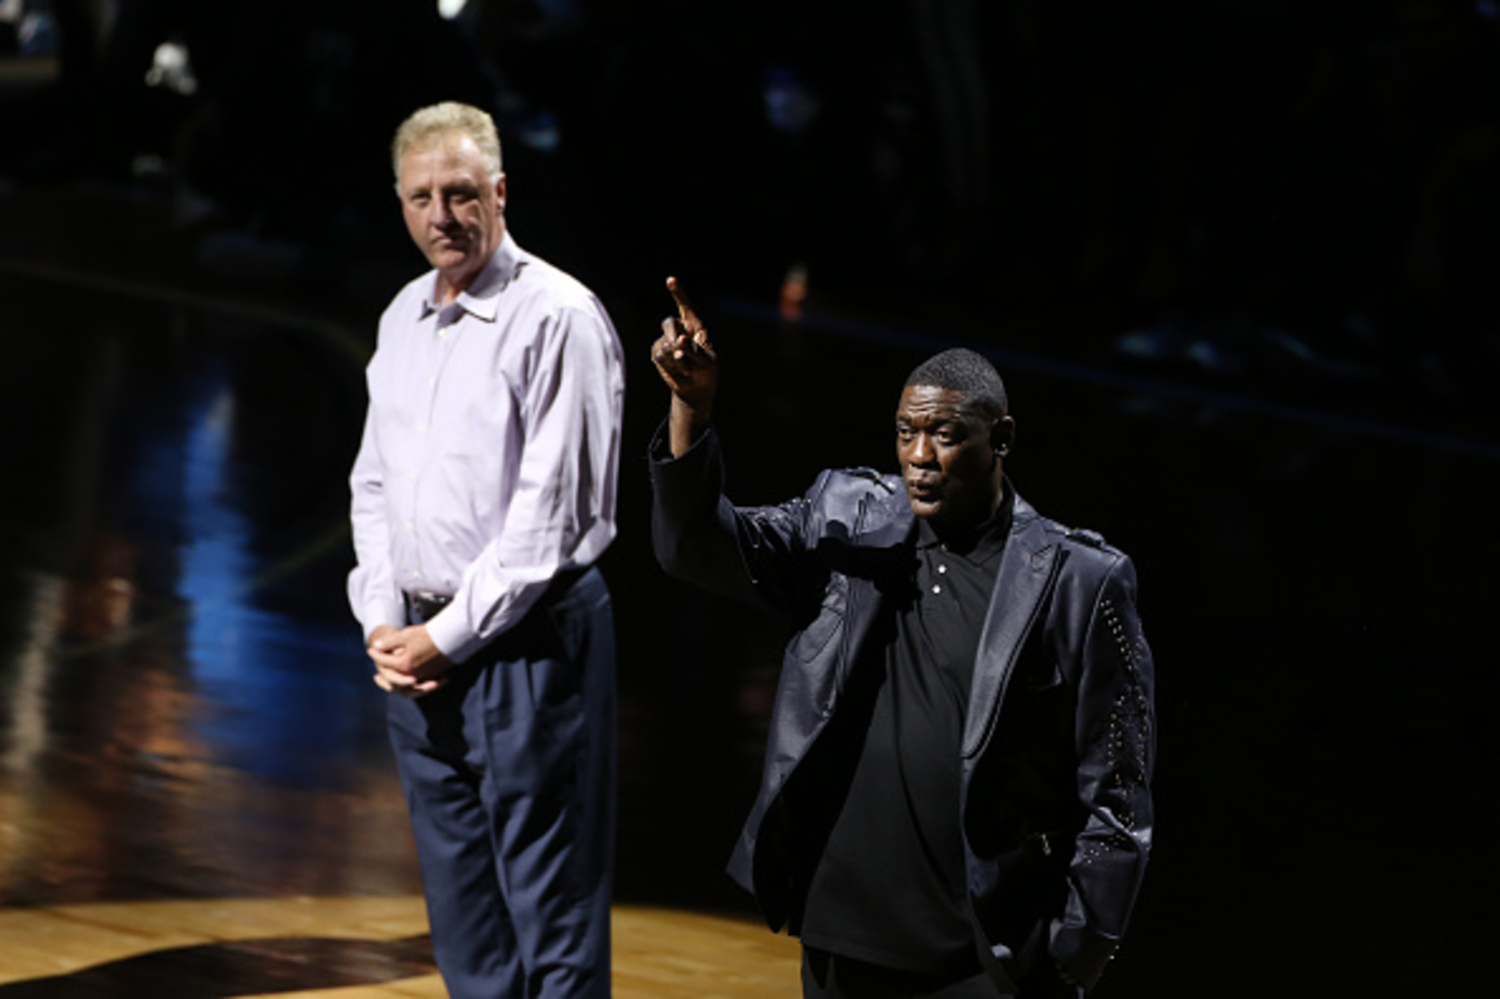 Larry Bird and Shawn Kemp battle